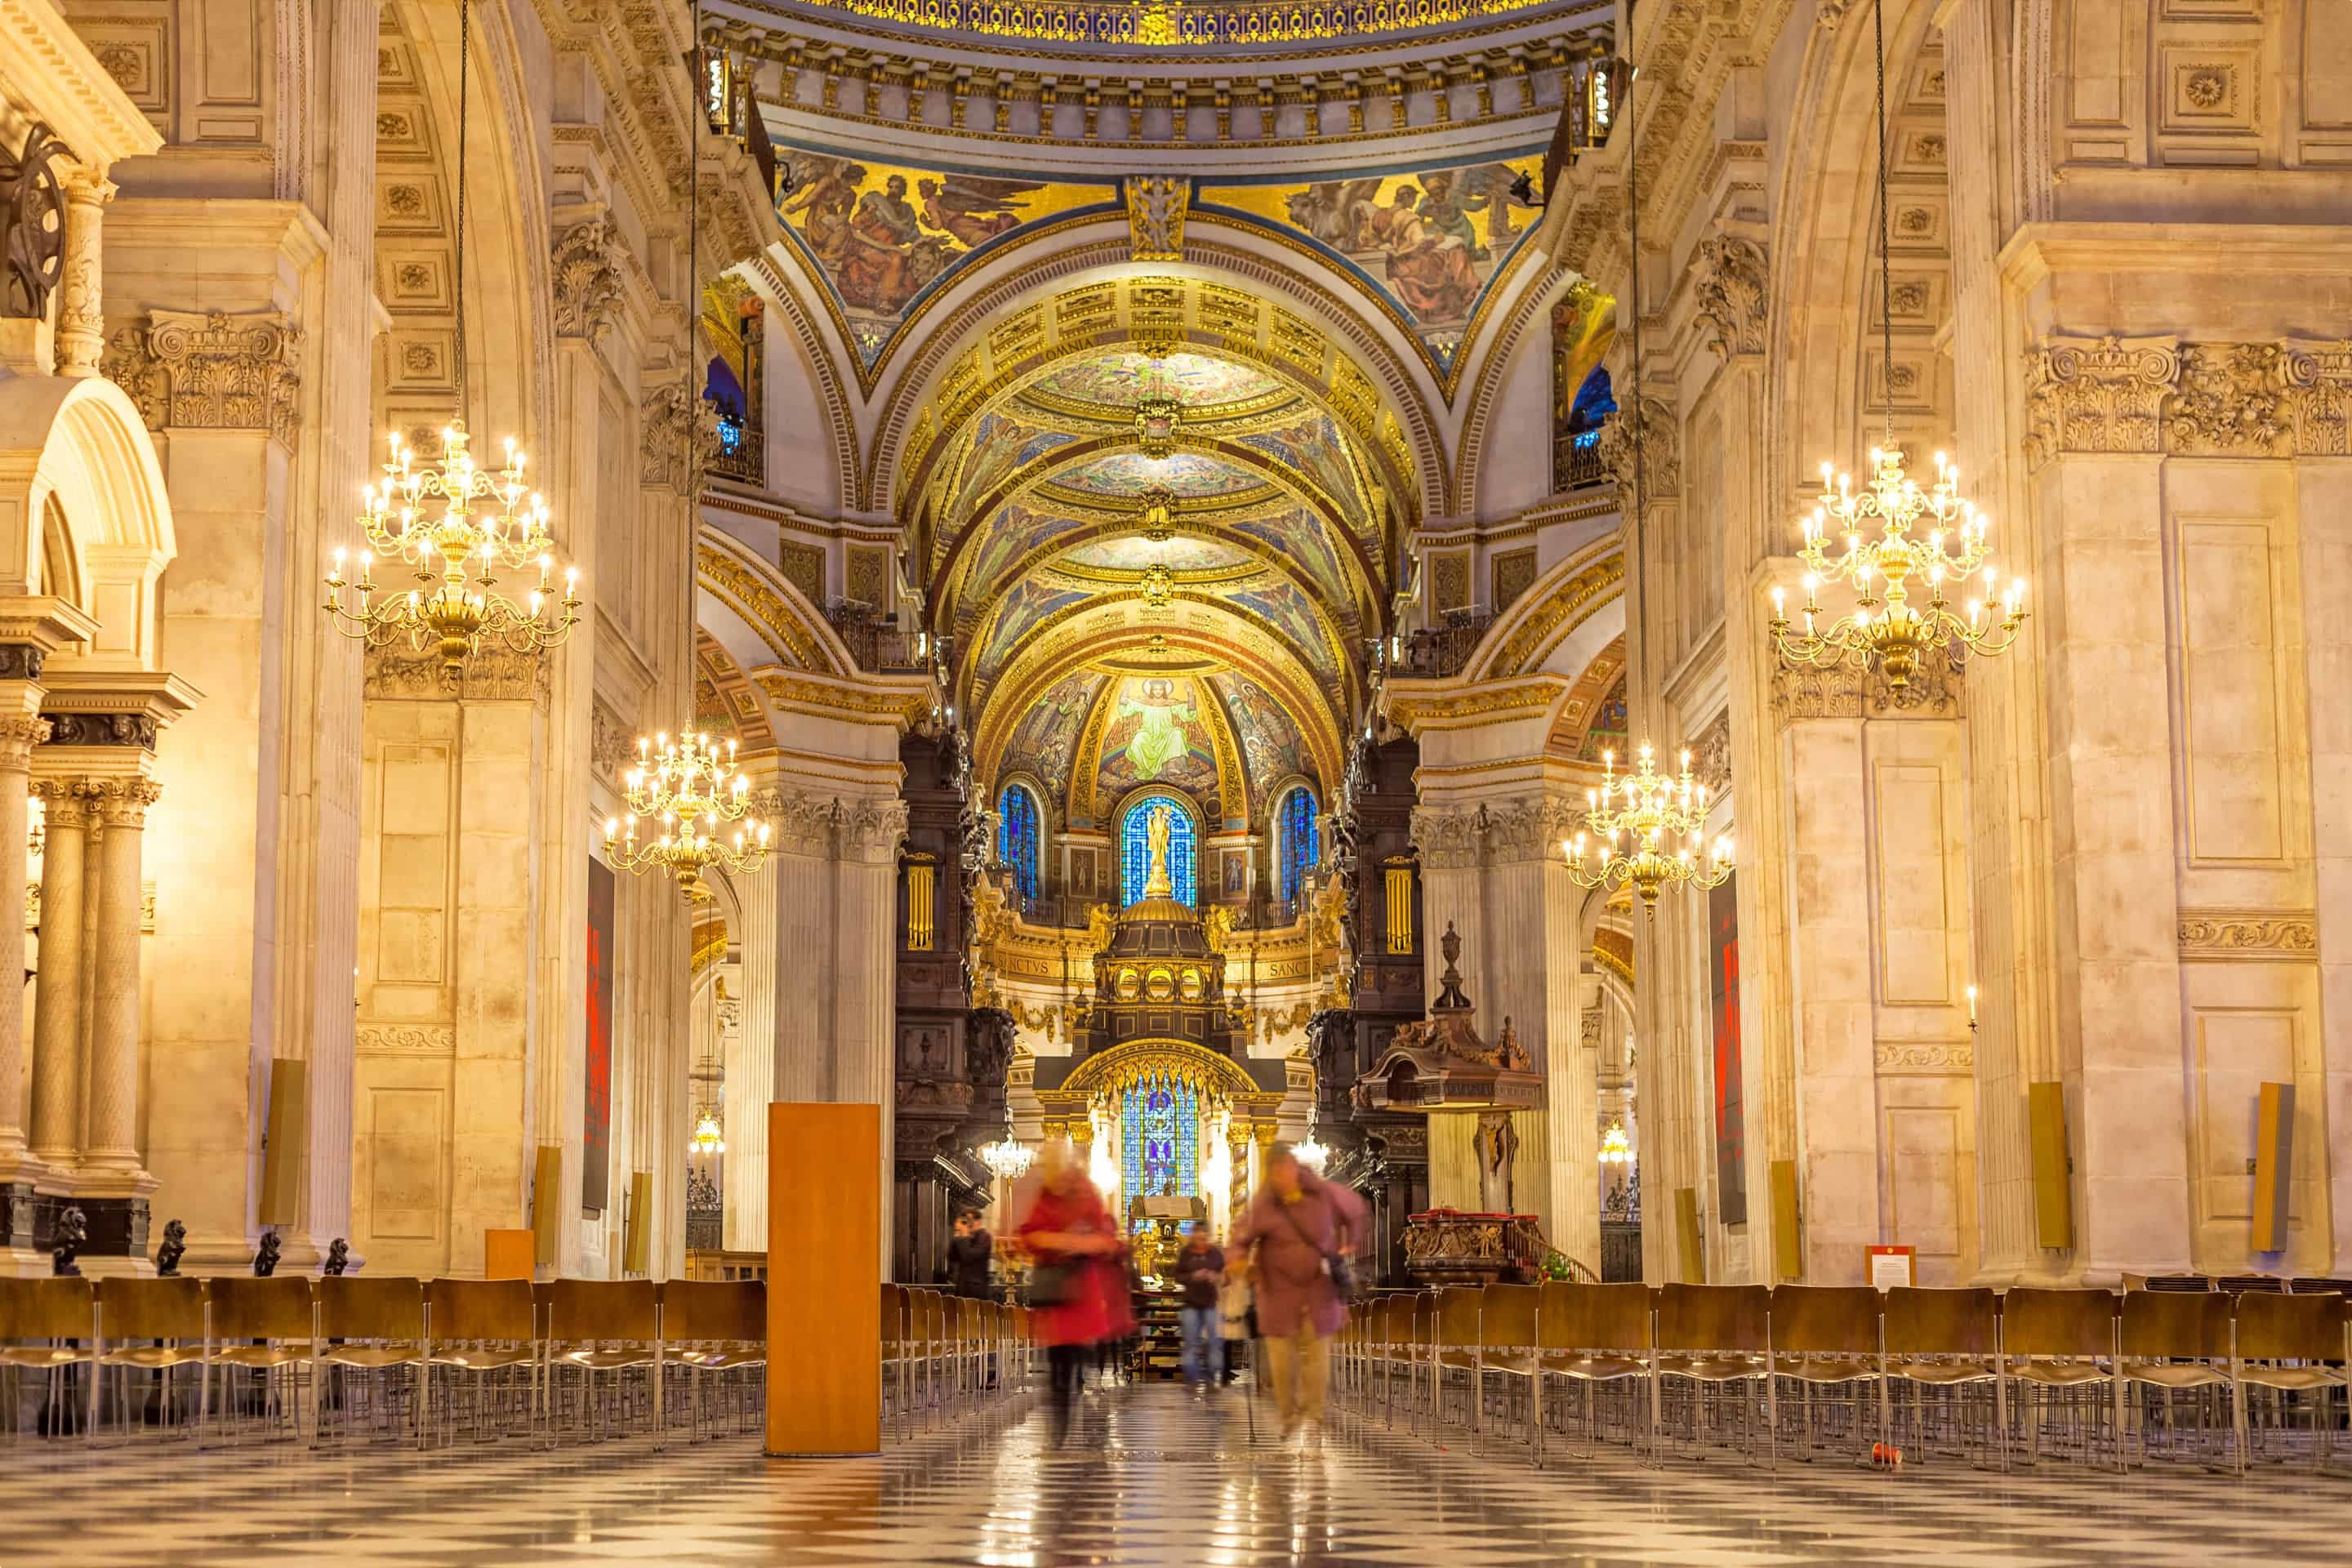 Interior of St Paul's Cathedral